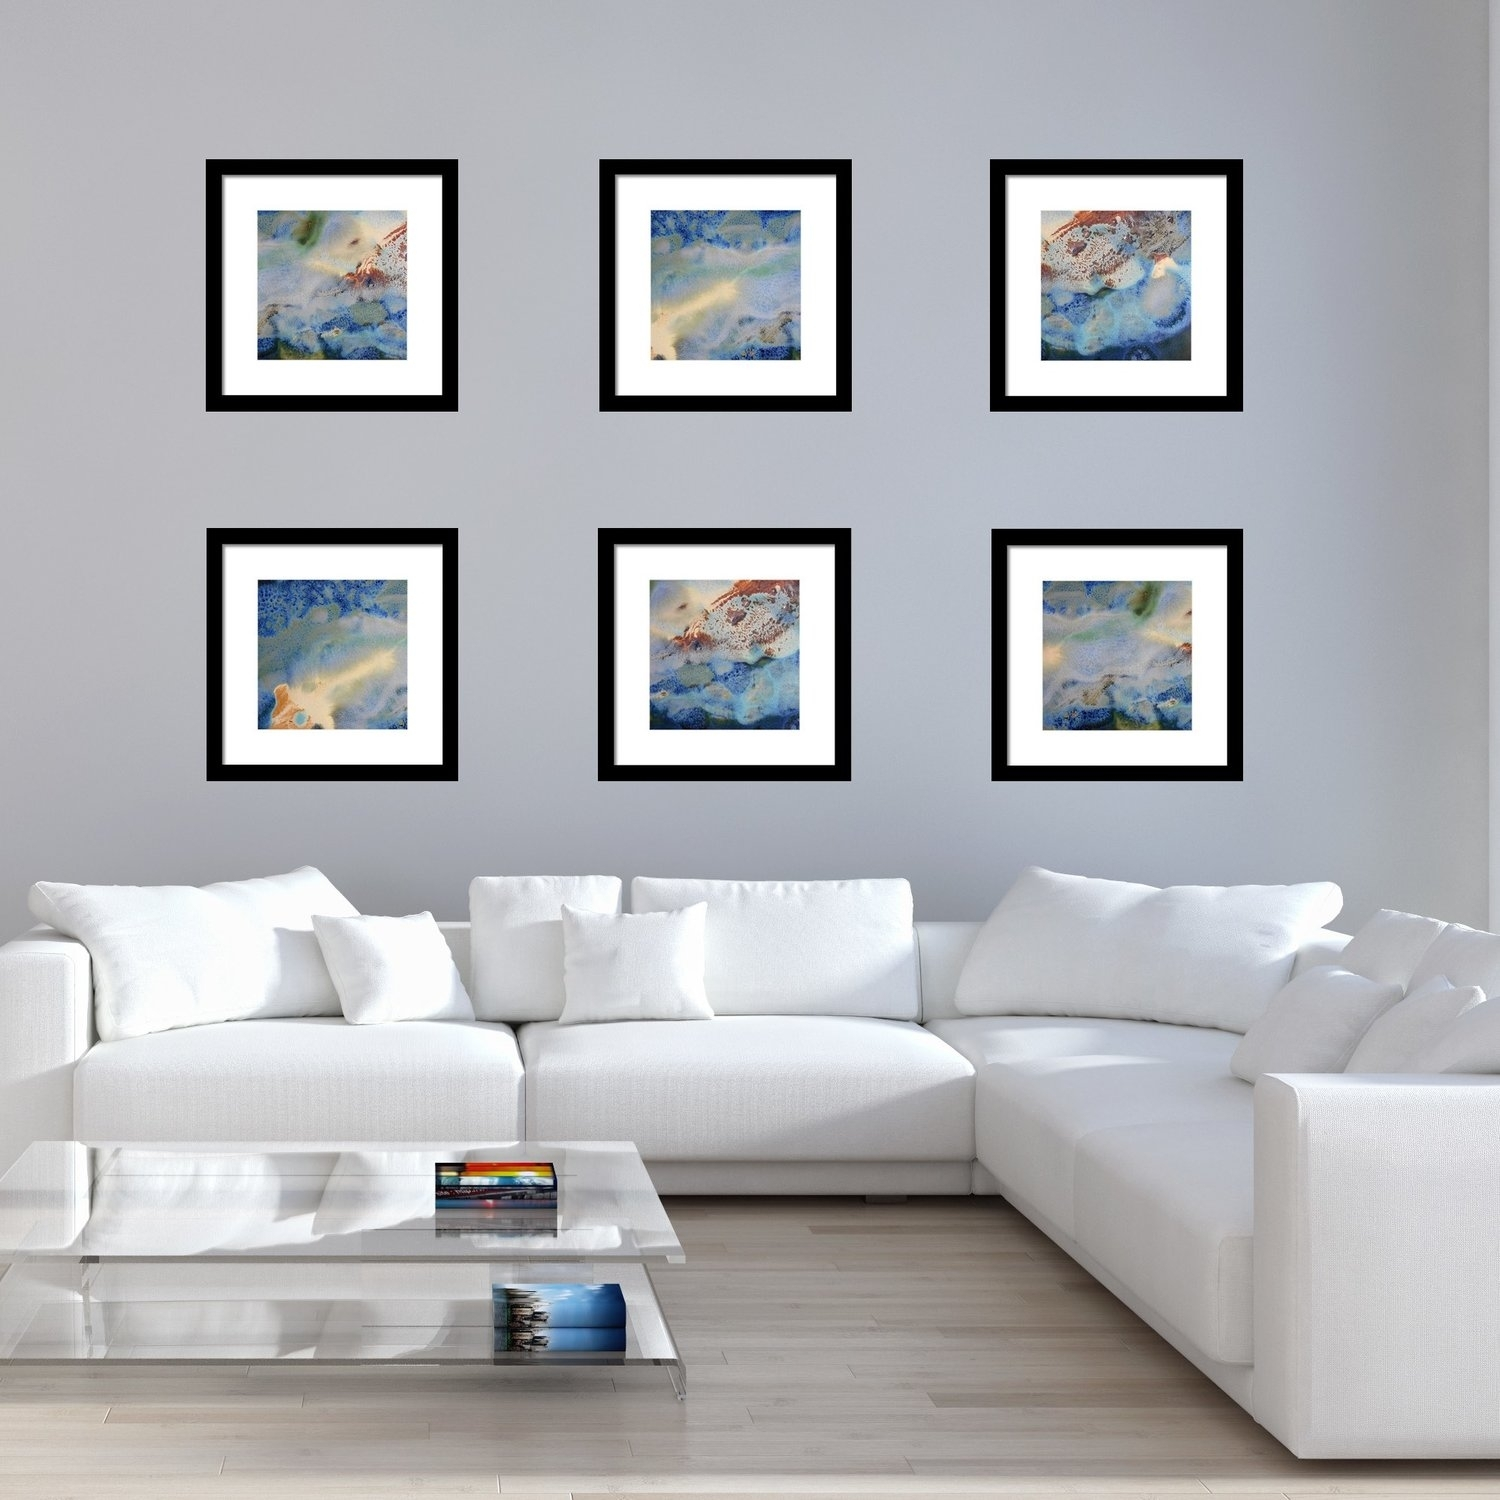 Set Of 6 Abstract Framed Prints – Square #17, 18 & 19 | White Intended For Most Popular Neutral Abstract Wall Art (View 7 of 20)